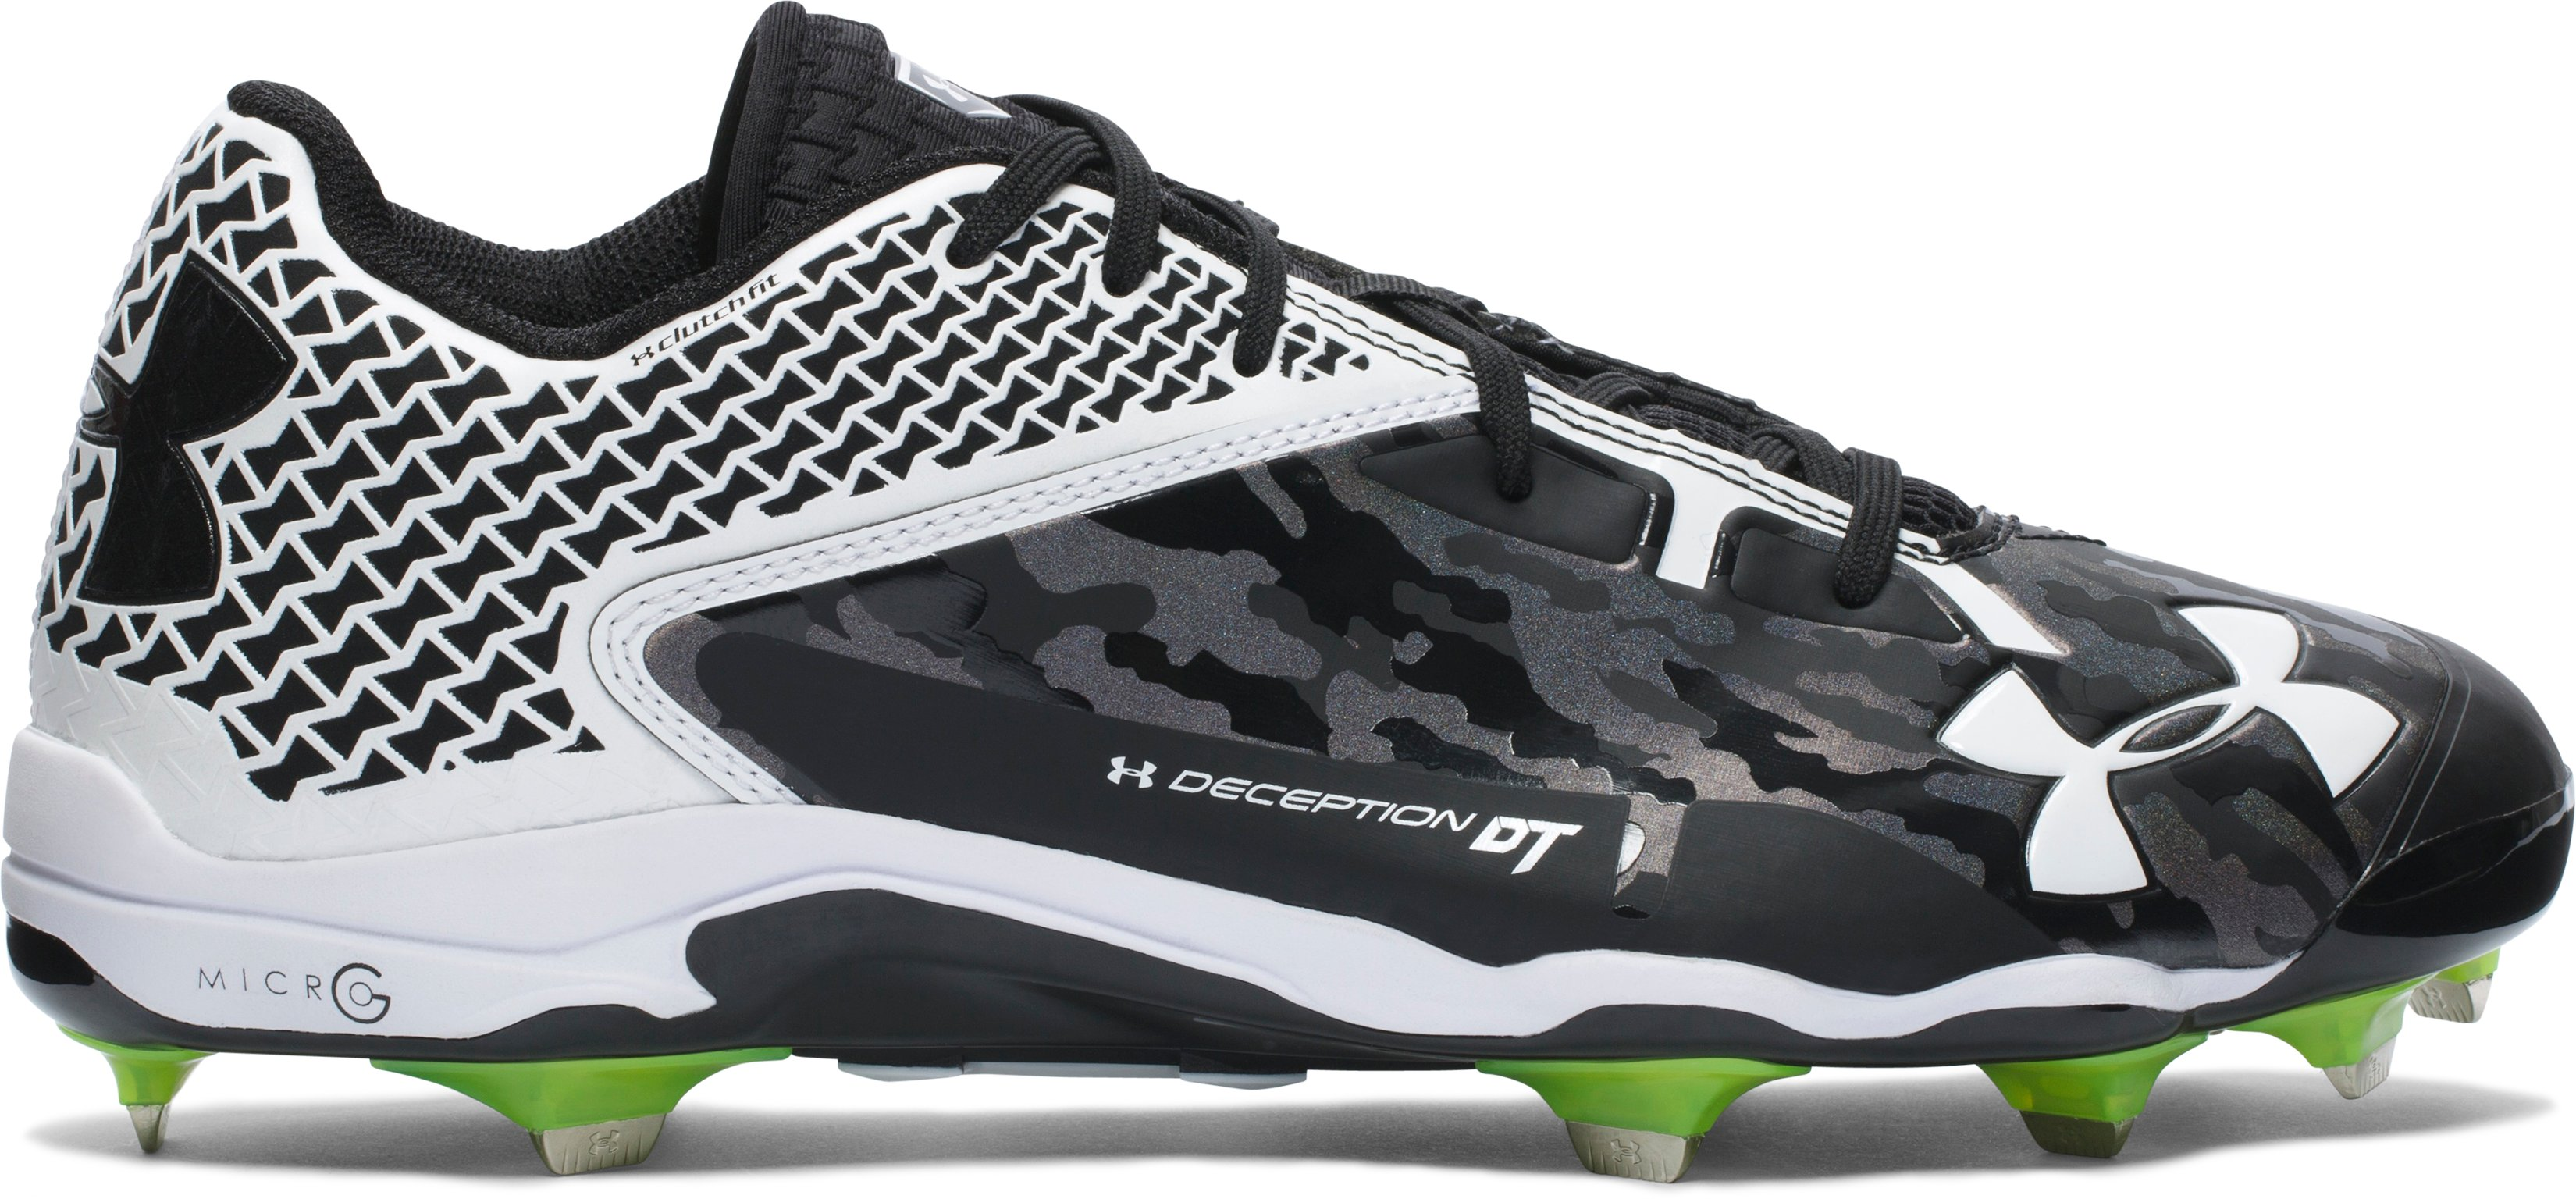 Men's UA Deception Low DiamondTips Baseball Cleats — All-Star Game Edition, Black